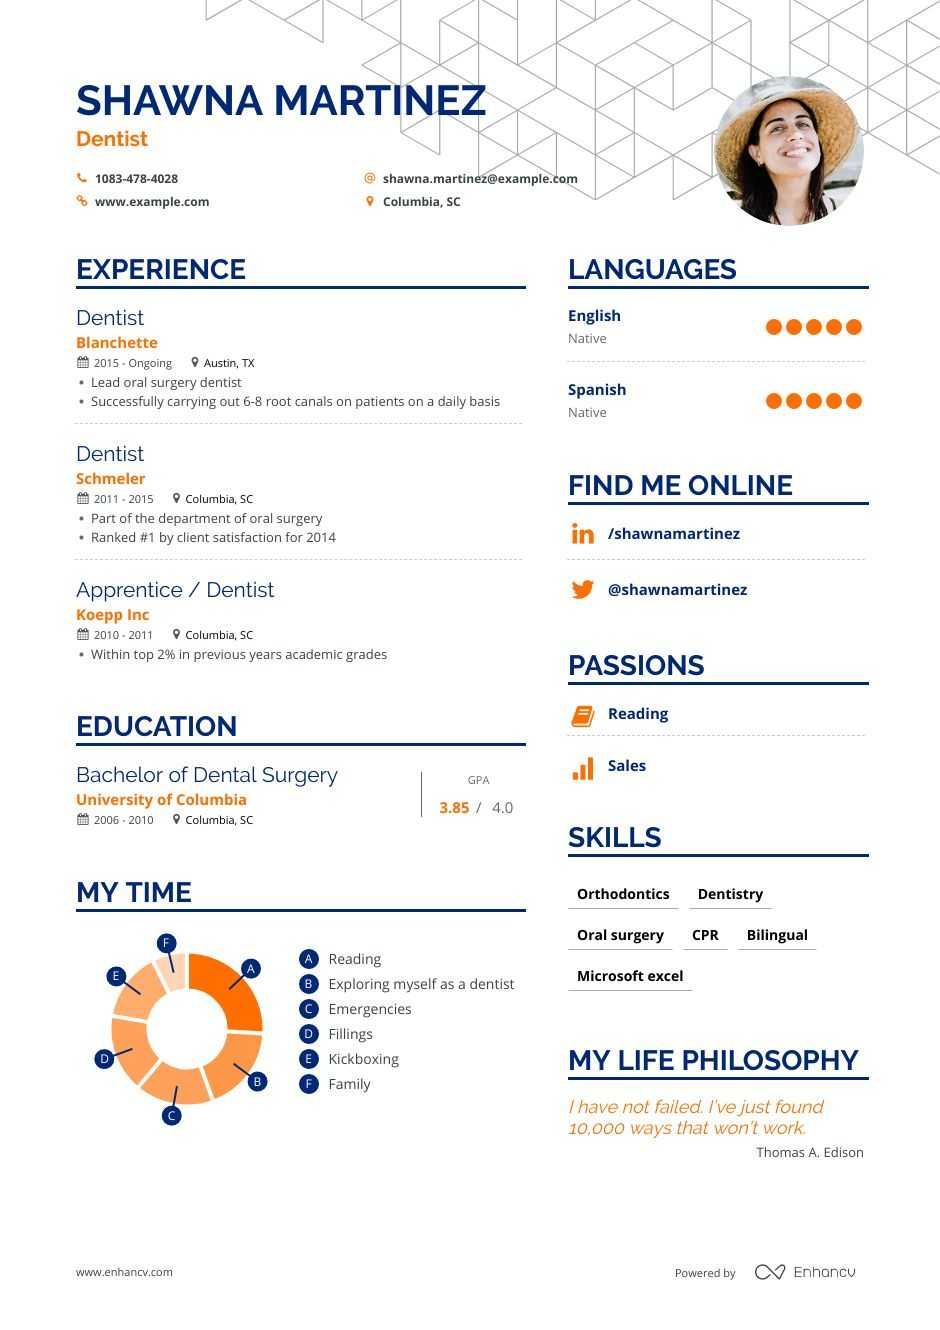 Dentist Resume Examples Skills Templates Amp More For 2020